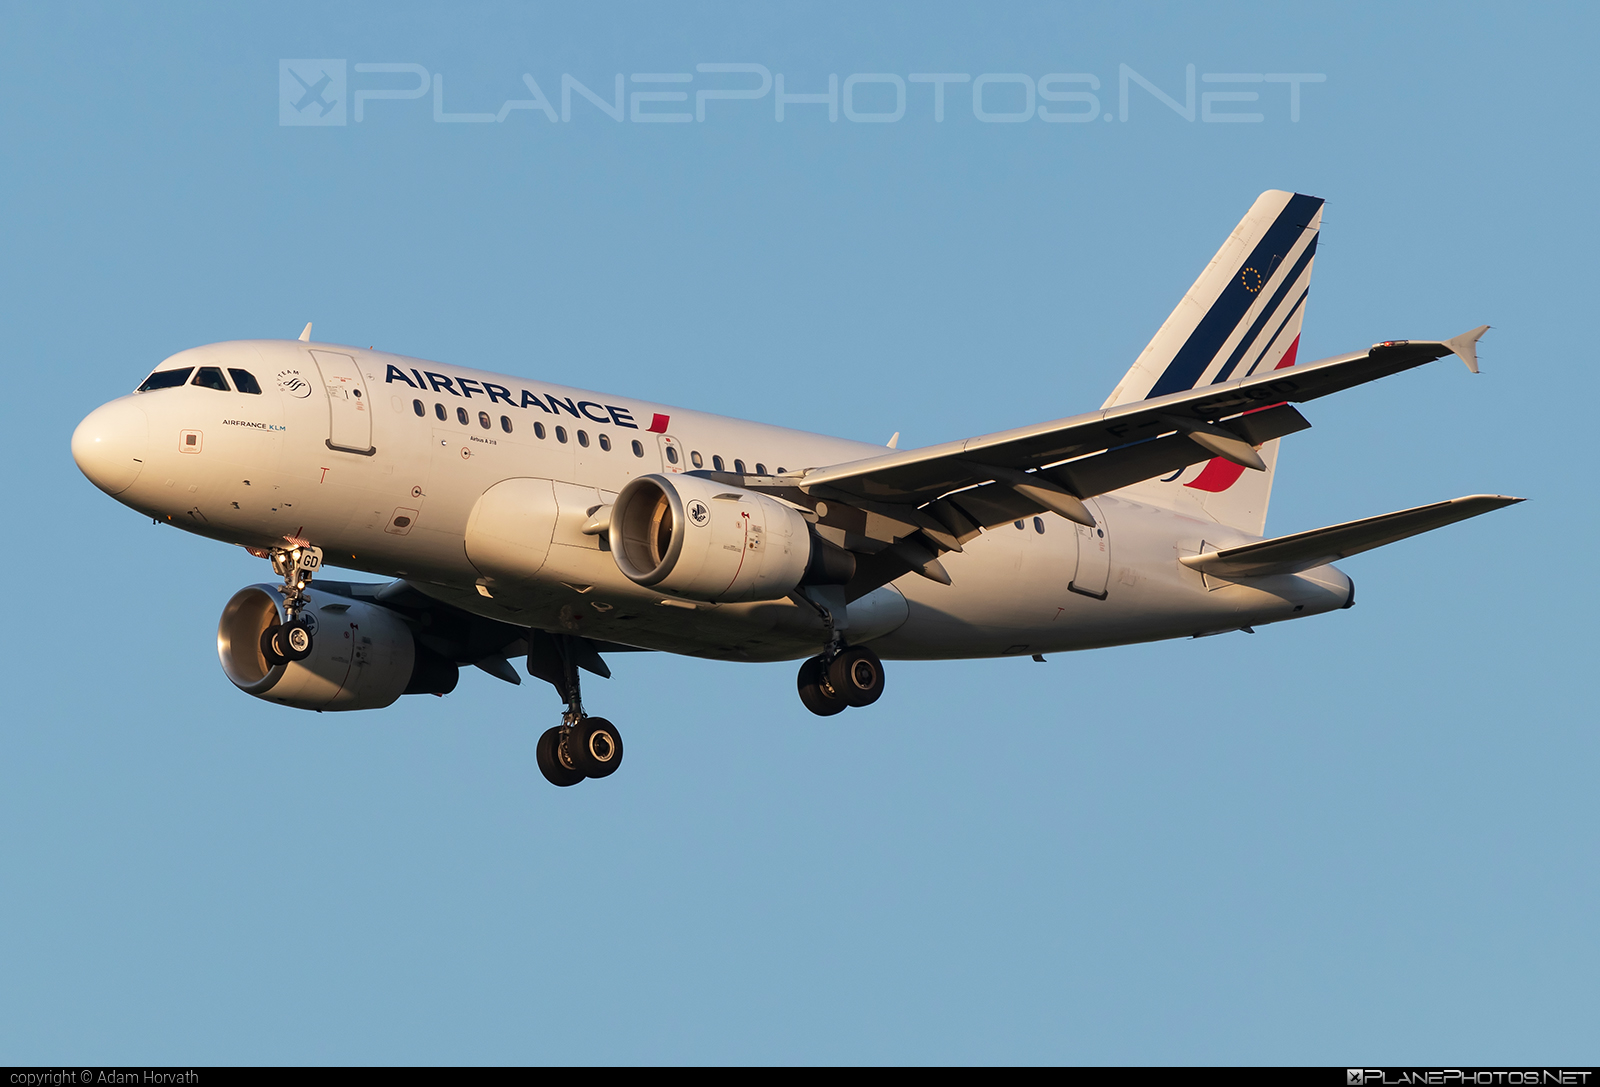 Airbus A318-111 - F-GUGD operated by Air France #a318 #a320family #airbus #airbus318 #airfrance